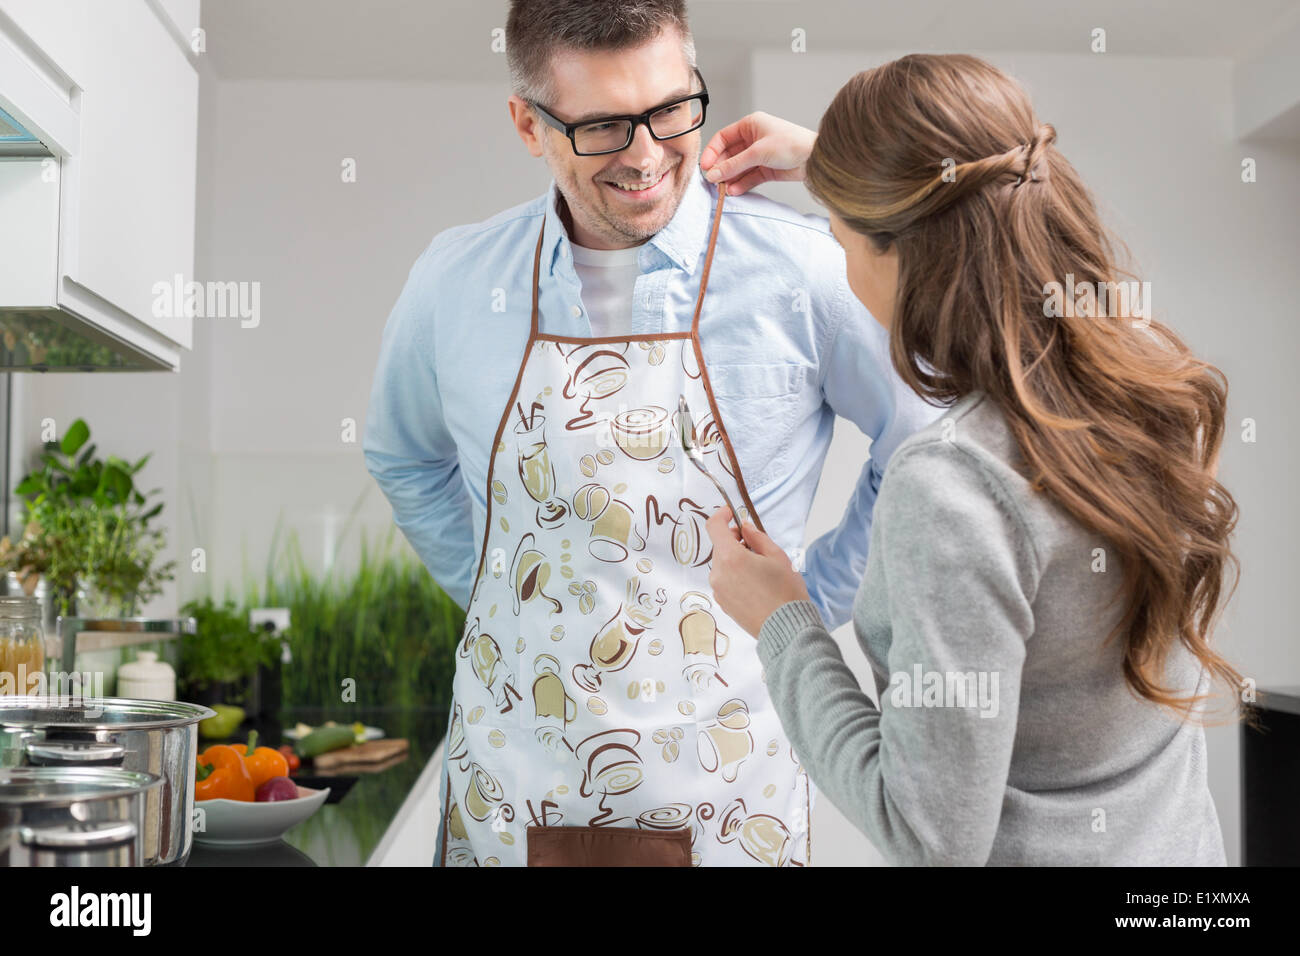 Woman helping man to put on apron in kitchen - Stock Image